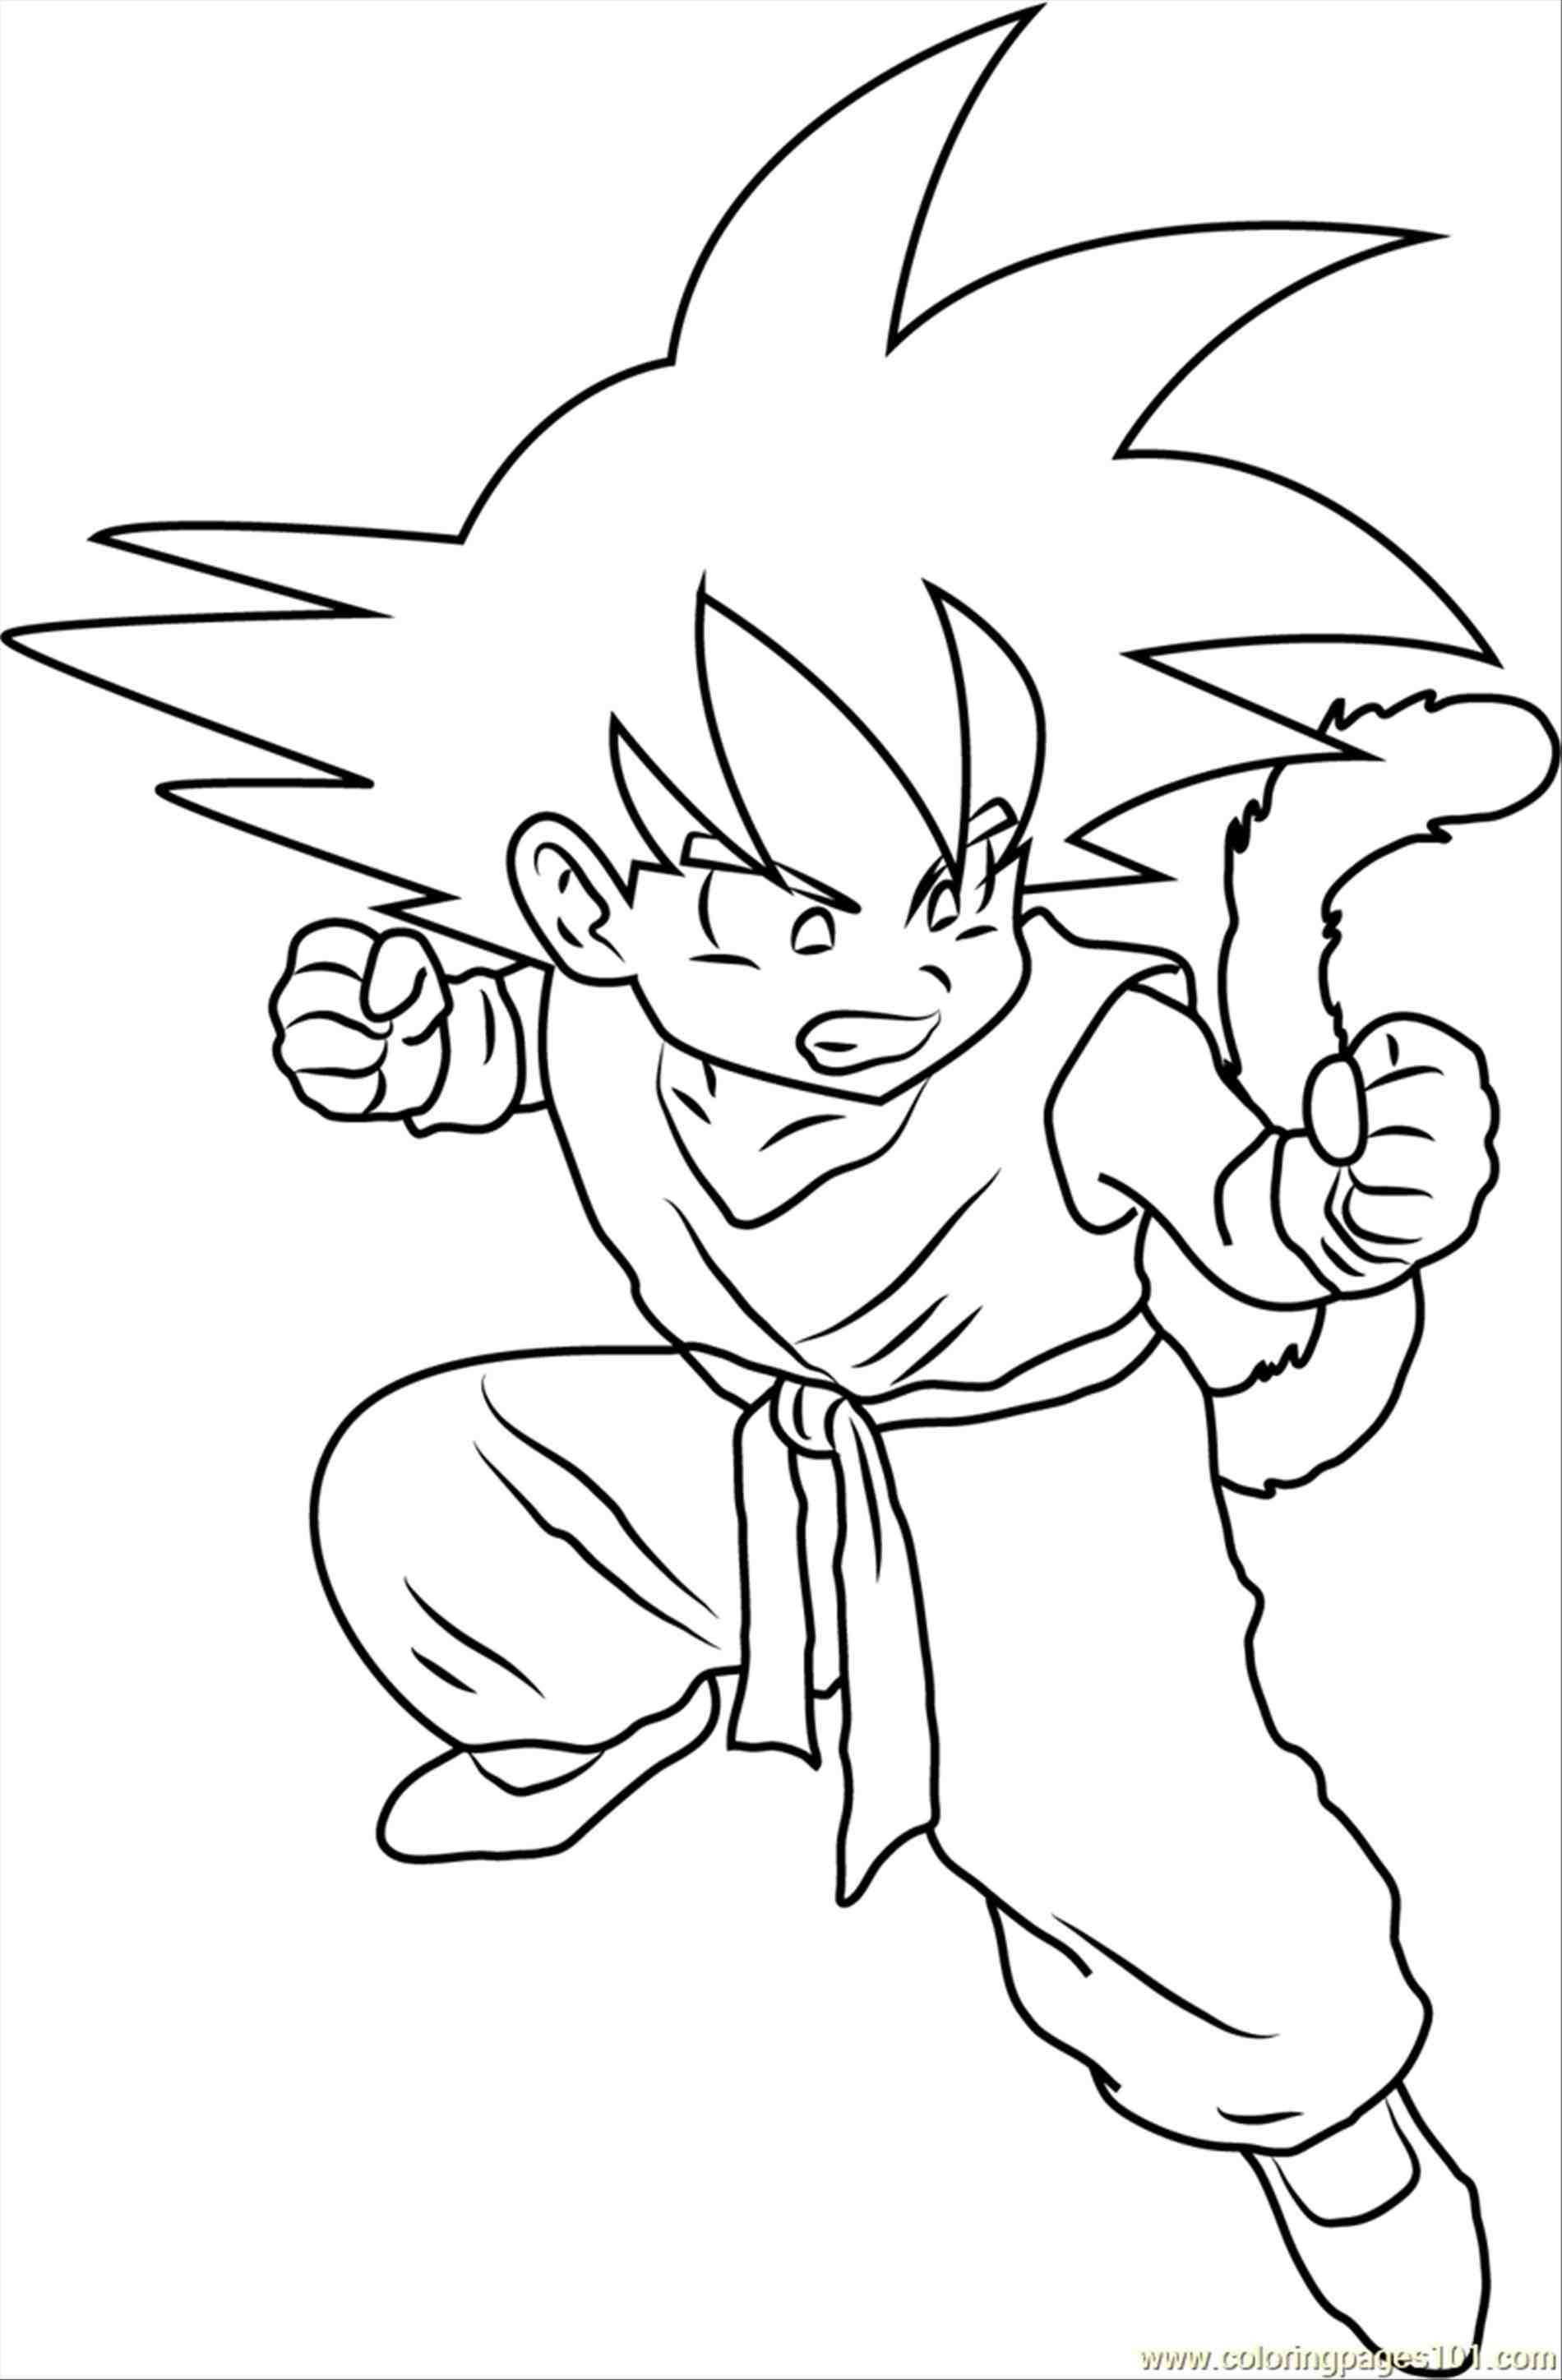 goku printable coloring pages goku coloring pages to download and print for free printable pages goku coloring